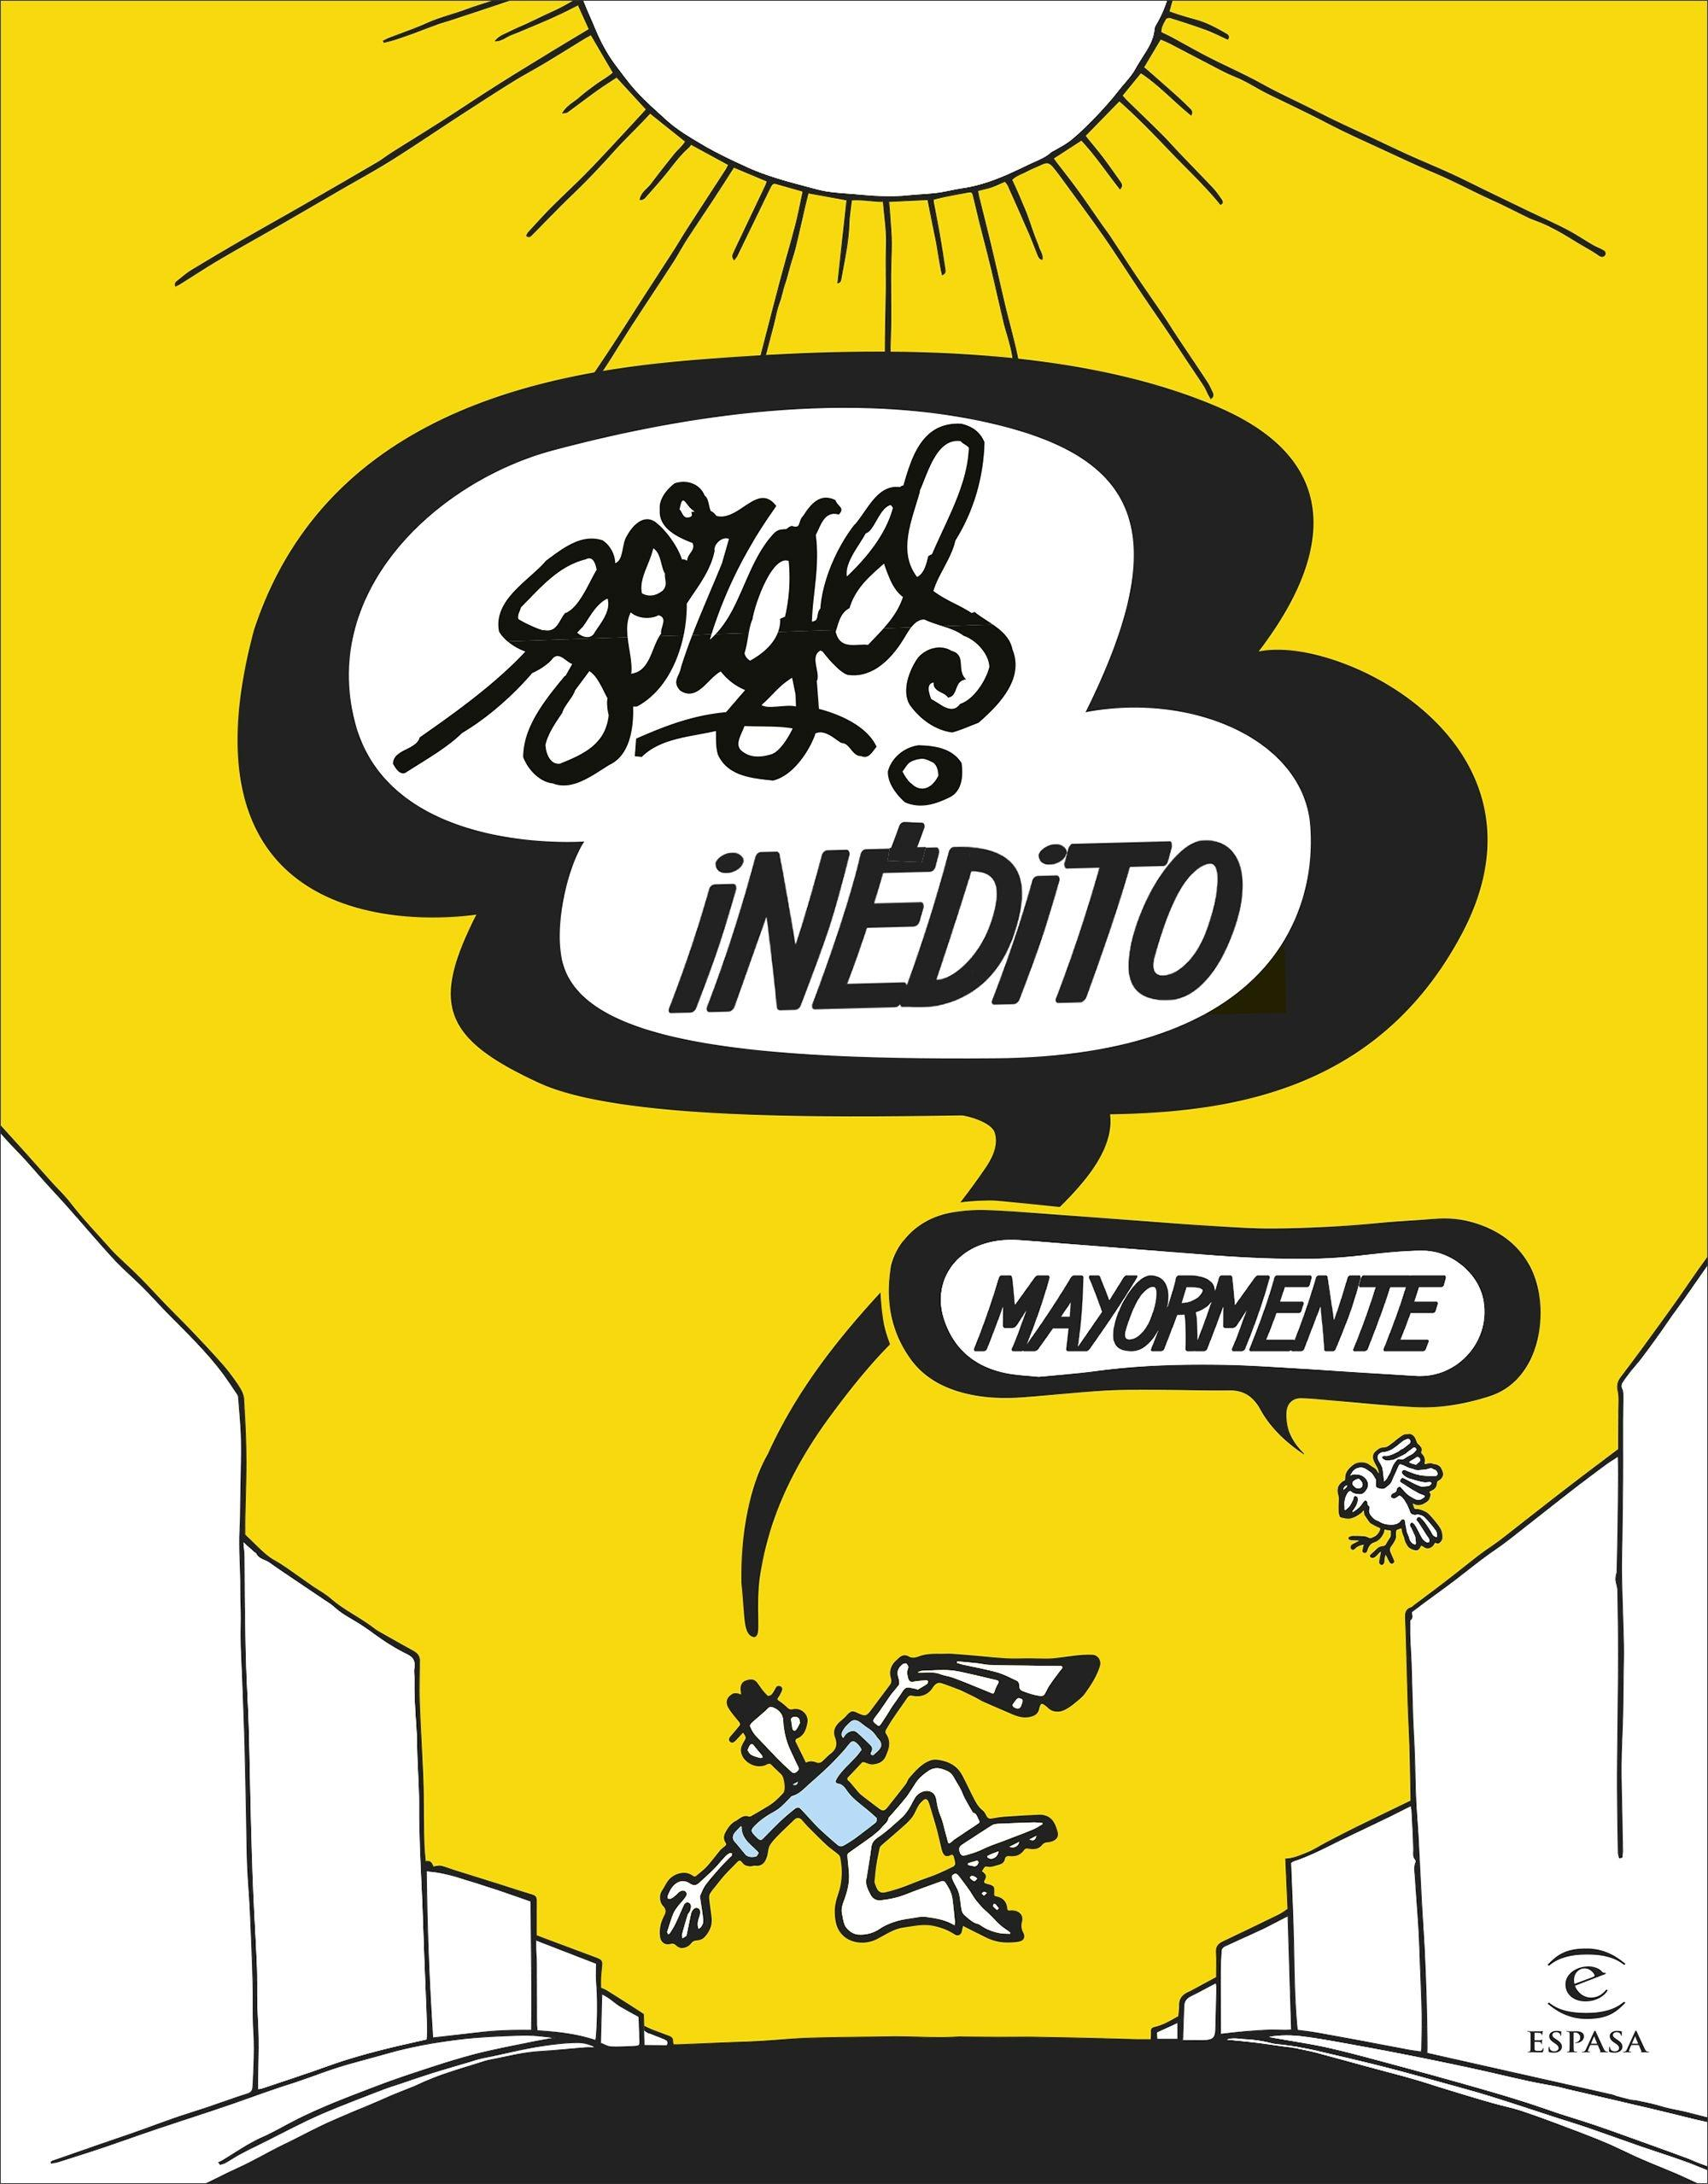 FORGES INEDITO